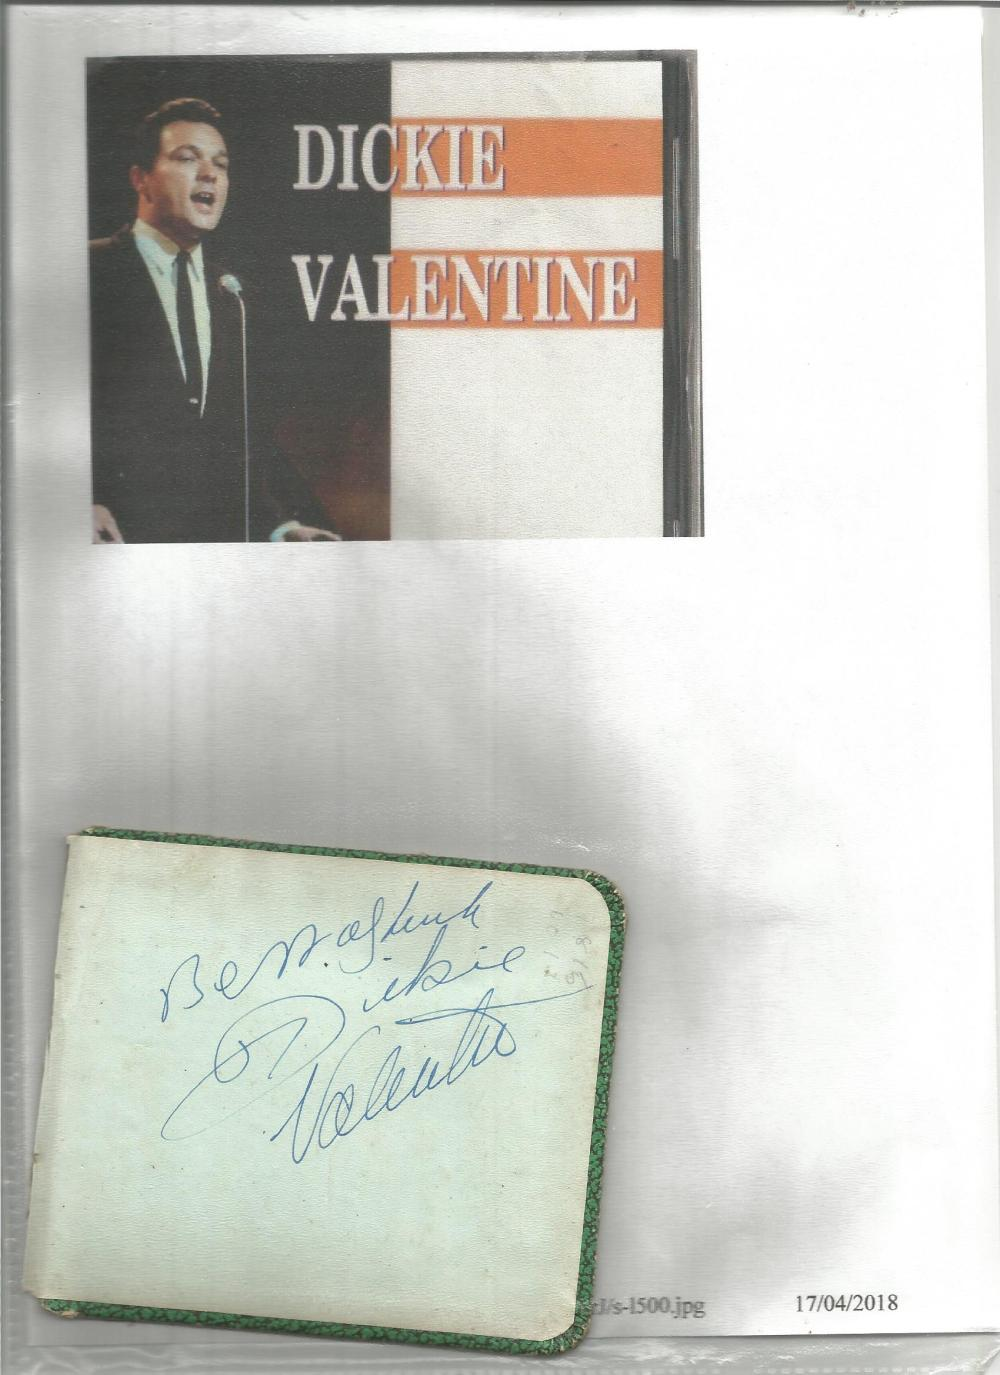 Dickie Valentine signed autograph album page, back page with hard back from book with biography